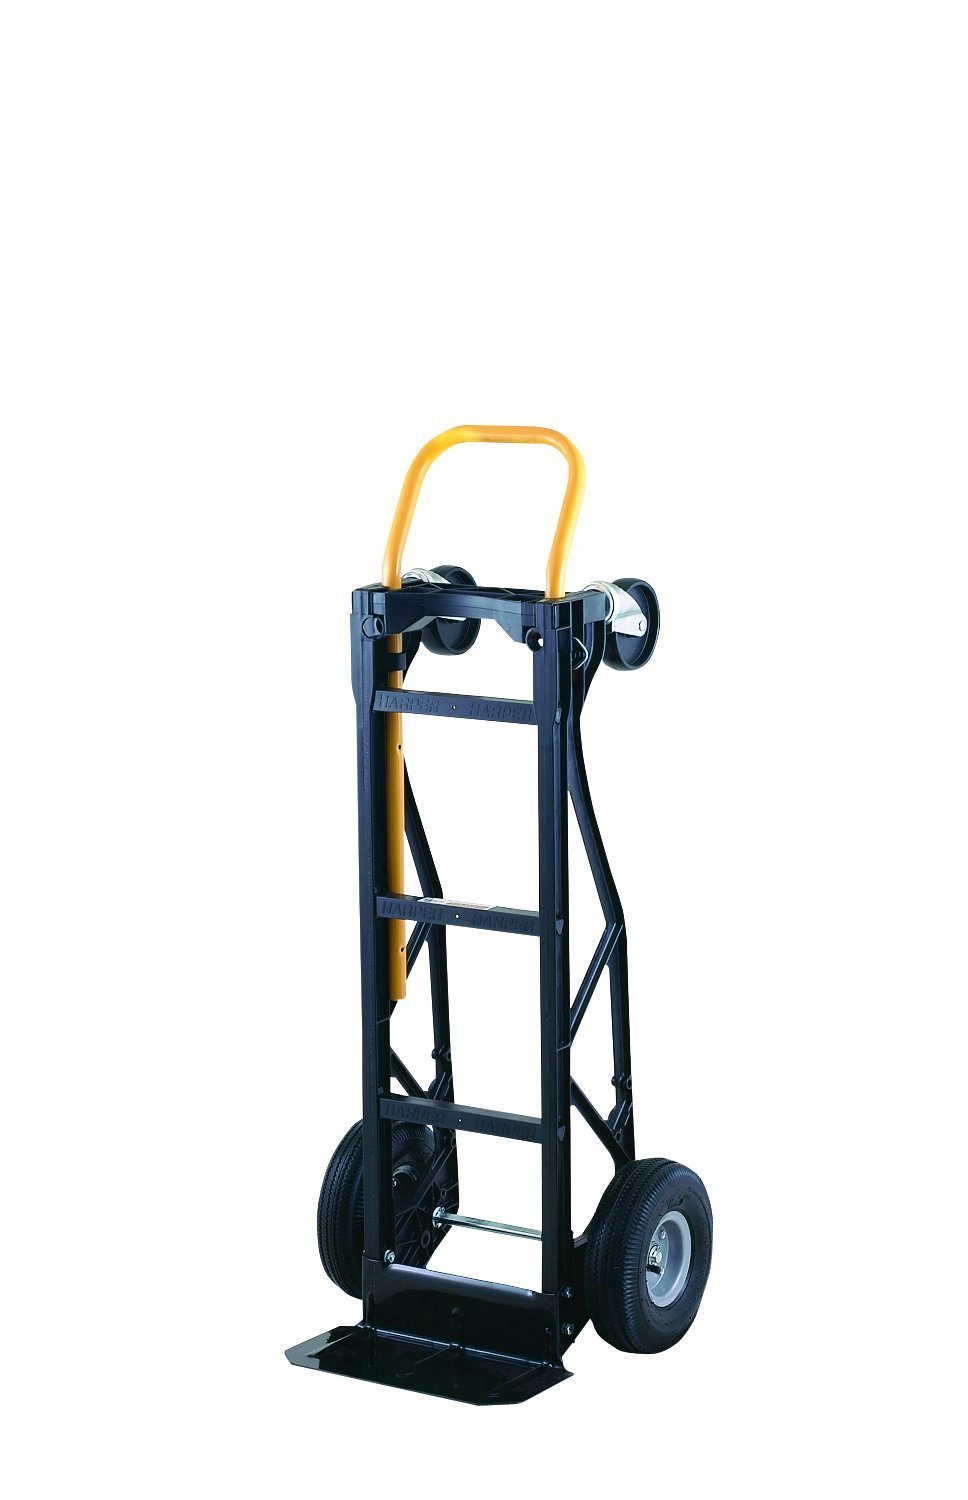 Harper Trucks 700 lb Capacity Glass Filled Nylon Convertible Hand Truck and Dolly with 10'' Pneumatic Wheels